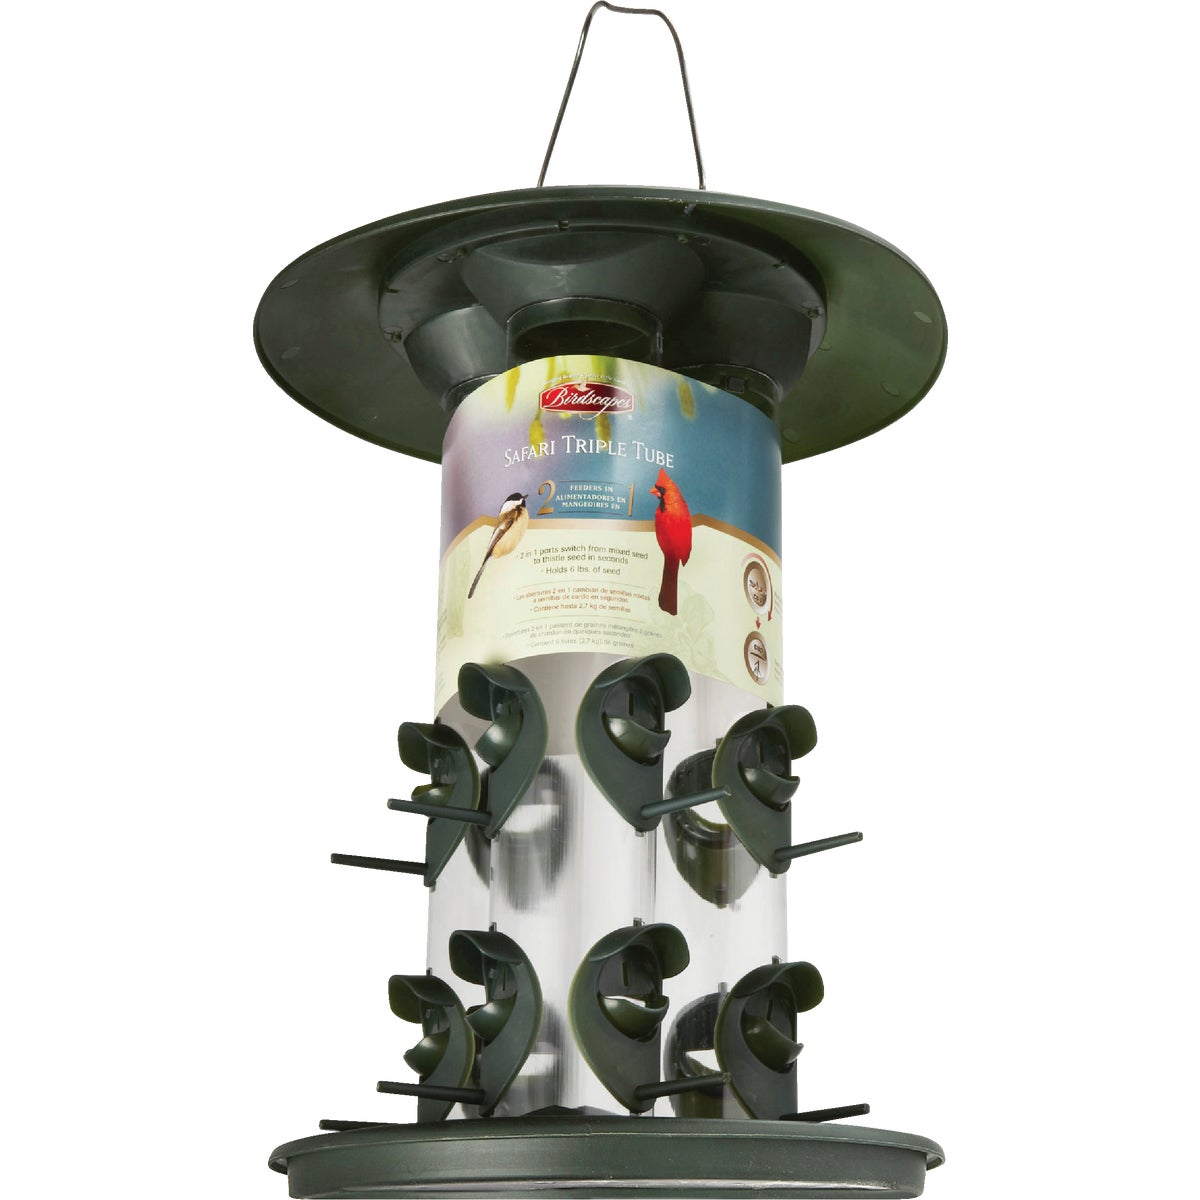 TRIPLE TUBE BIRD FEEDER - 369 by Woodstream Corp